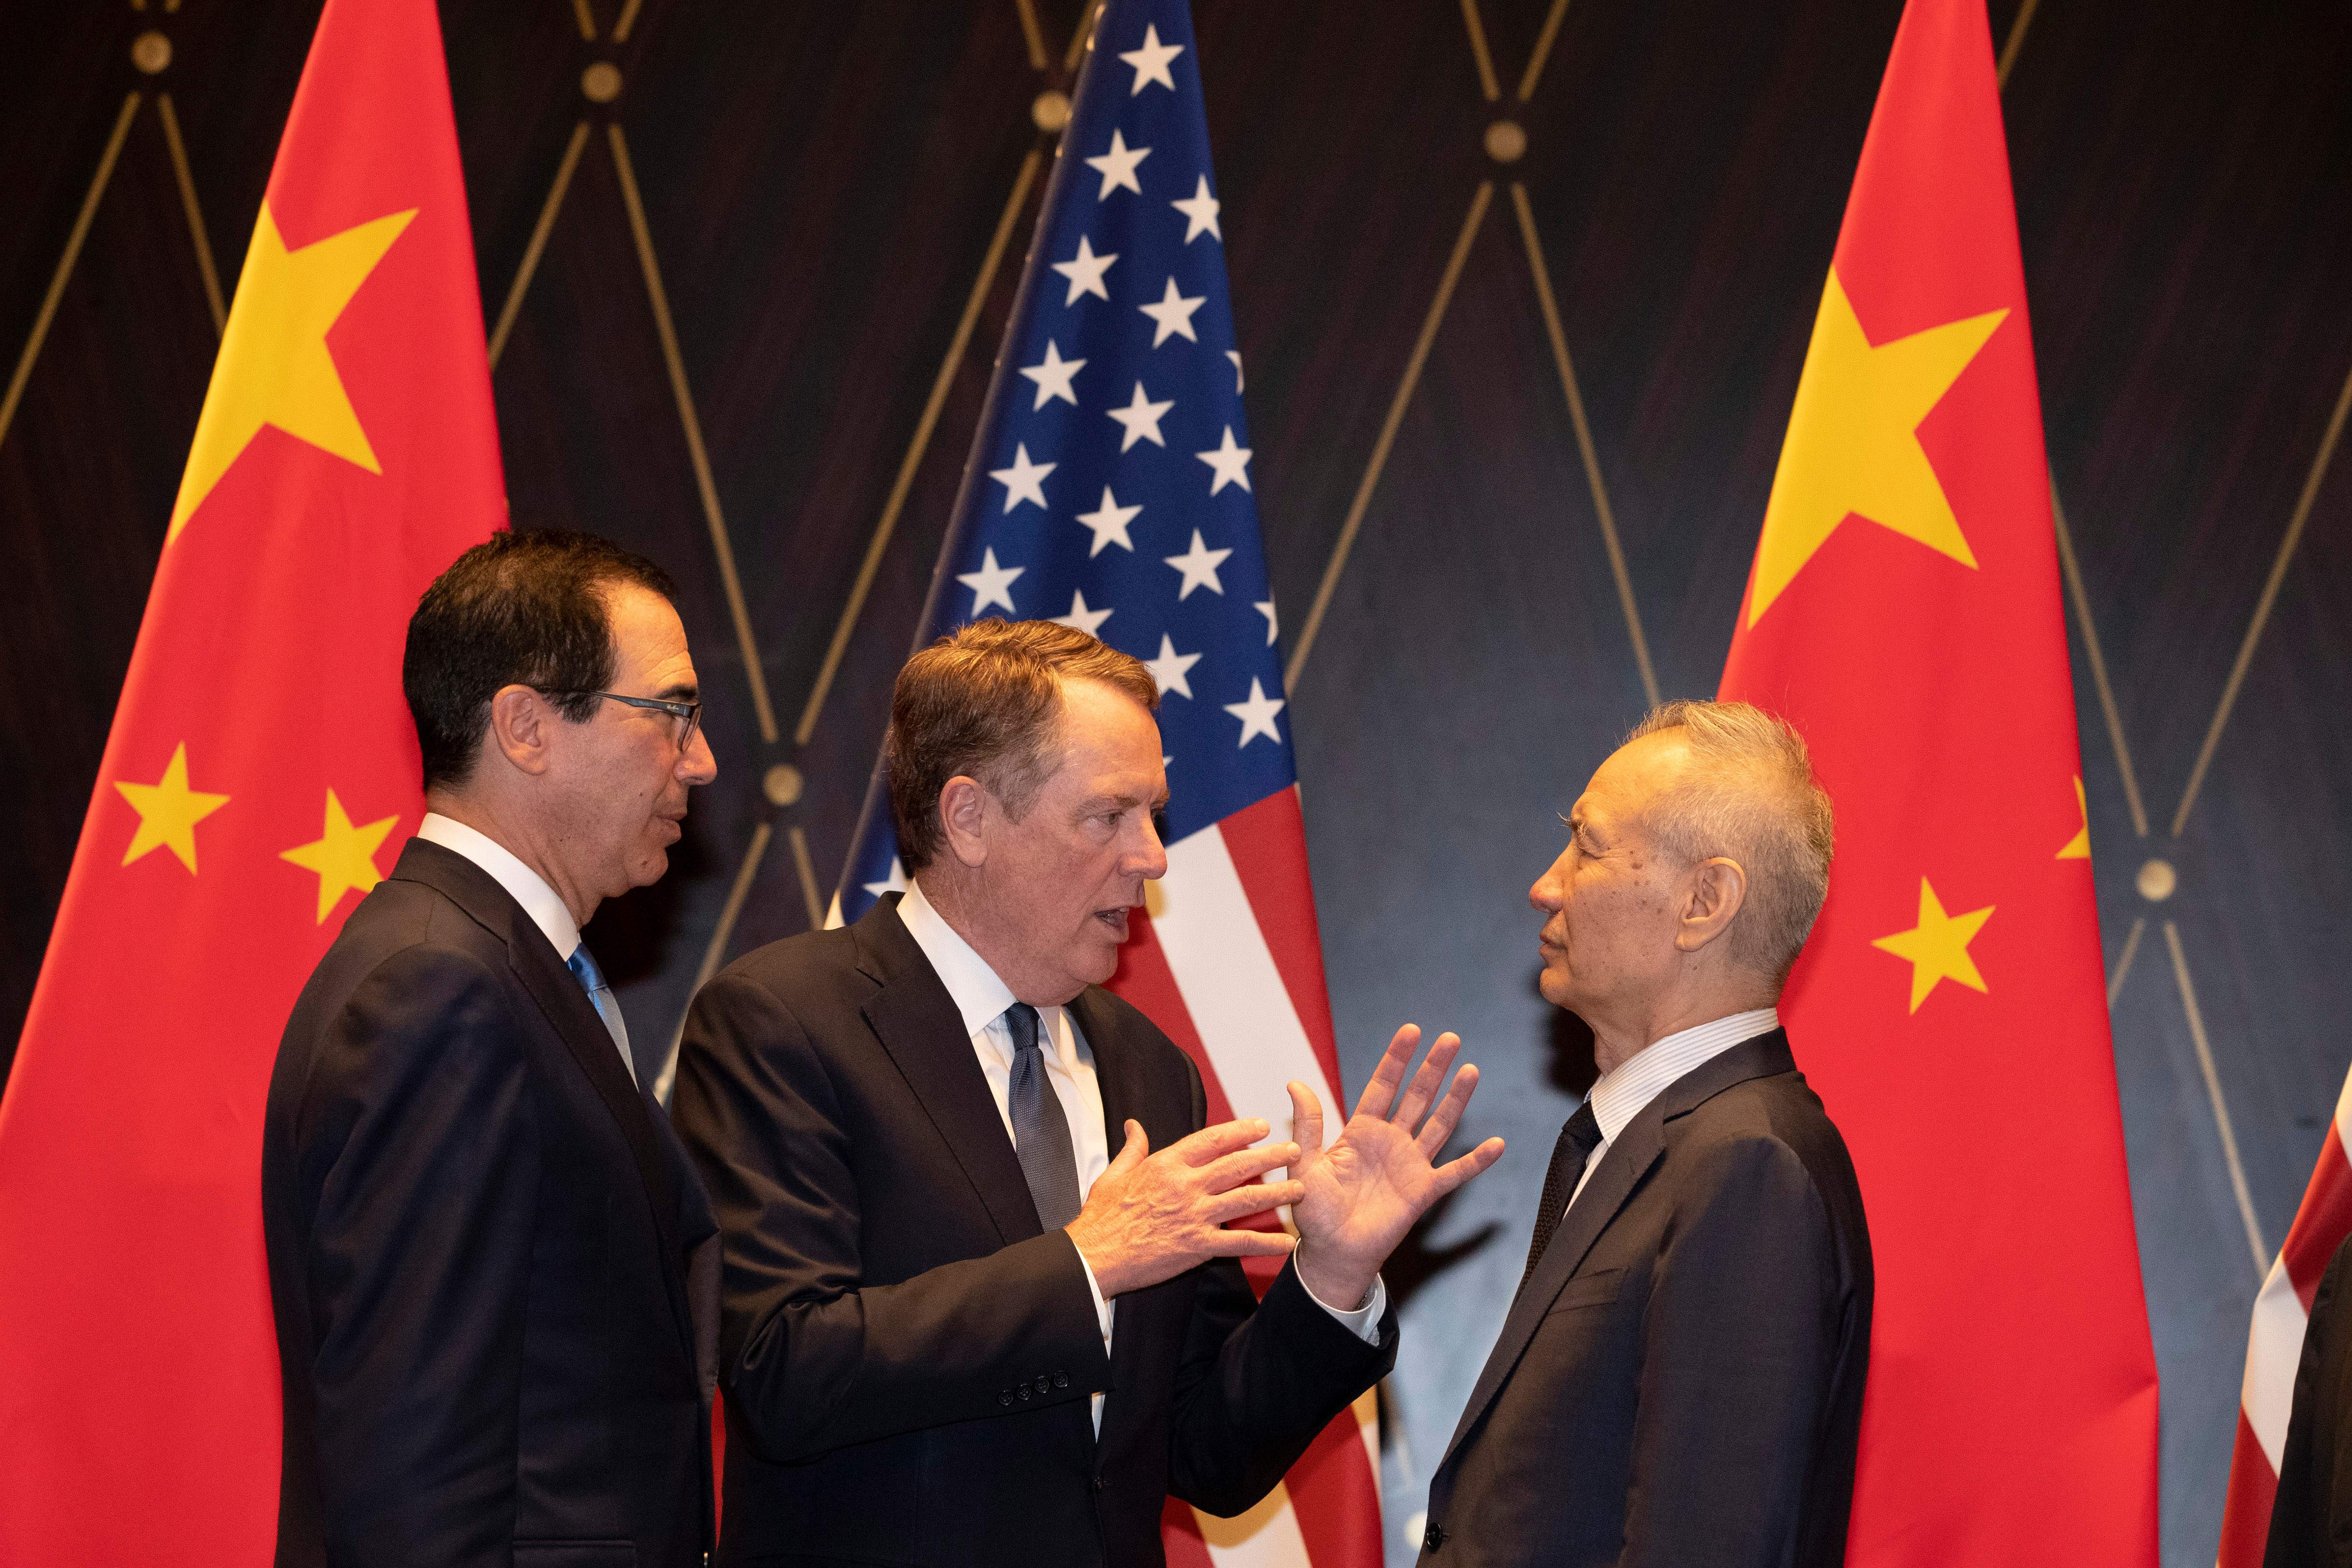 A pause in US-China trade war would be a 'big relief' to markets, says economist